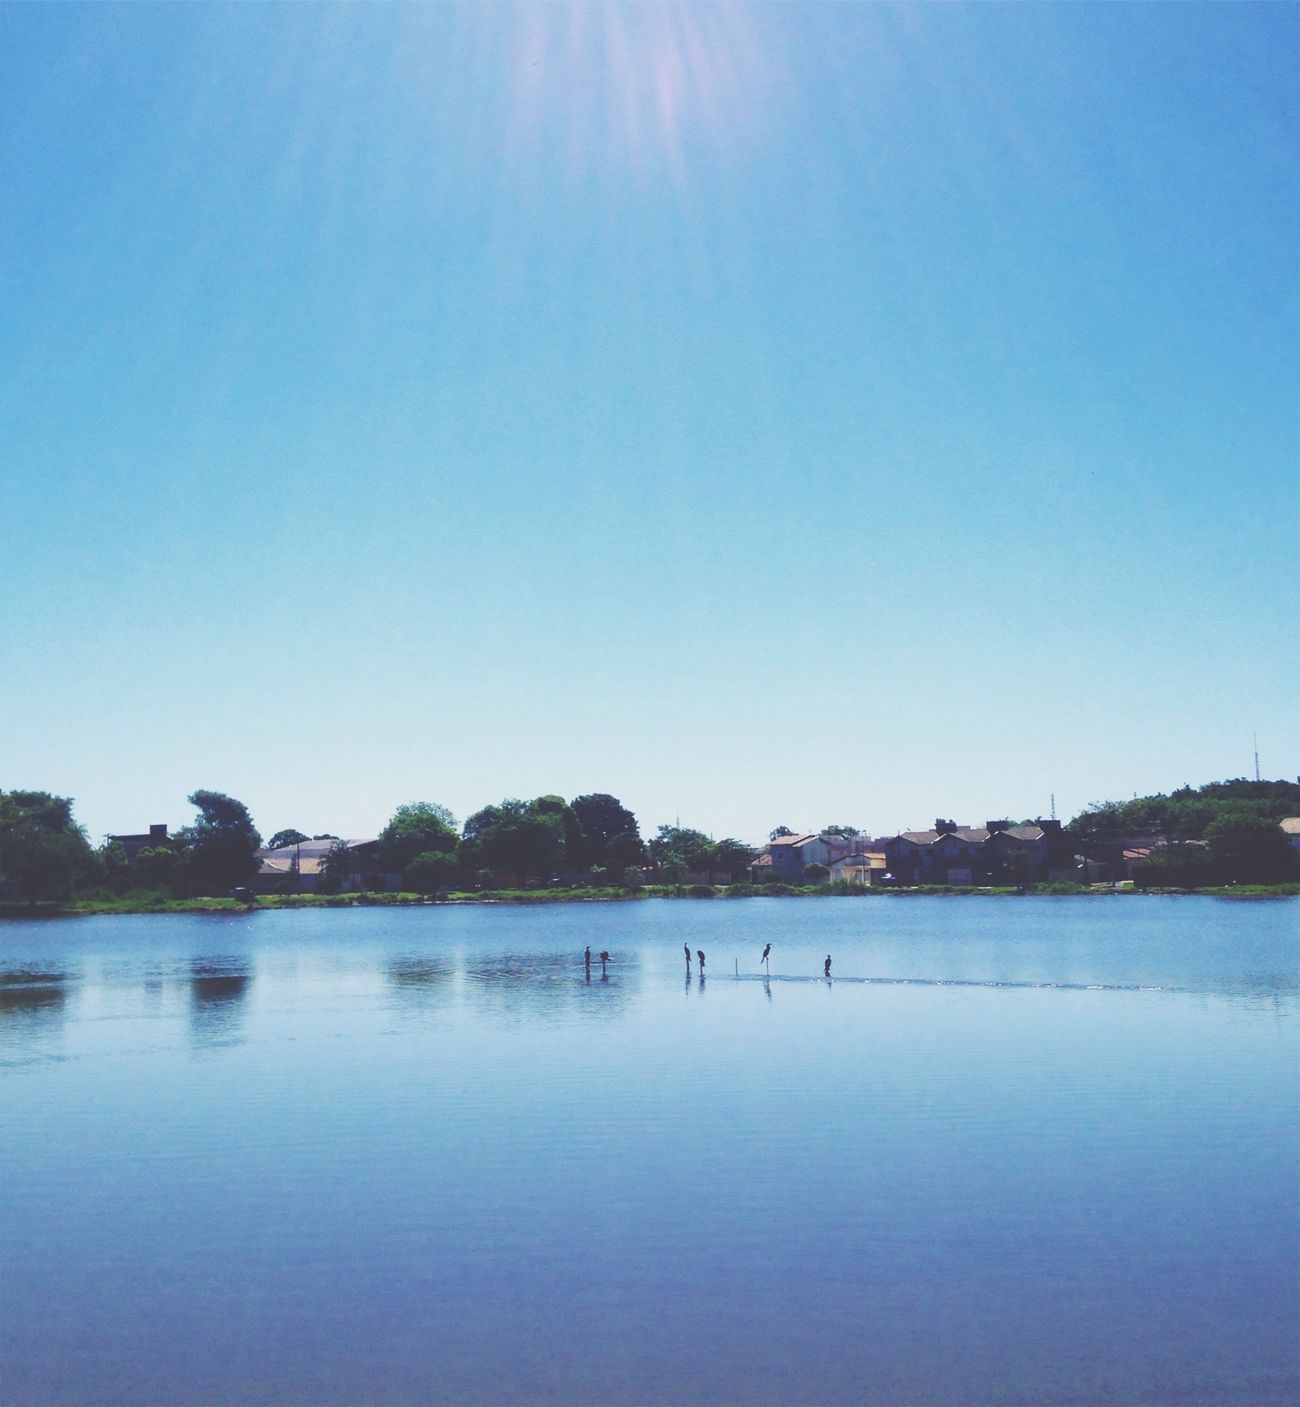 Lake Water Clear Sky Blue Nature Beauty In Nature Tranquility Outdoors Day No People Sky Tree Landscape